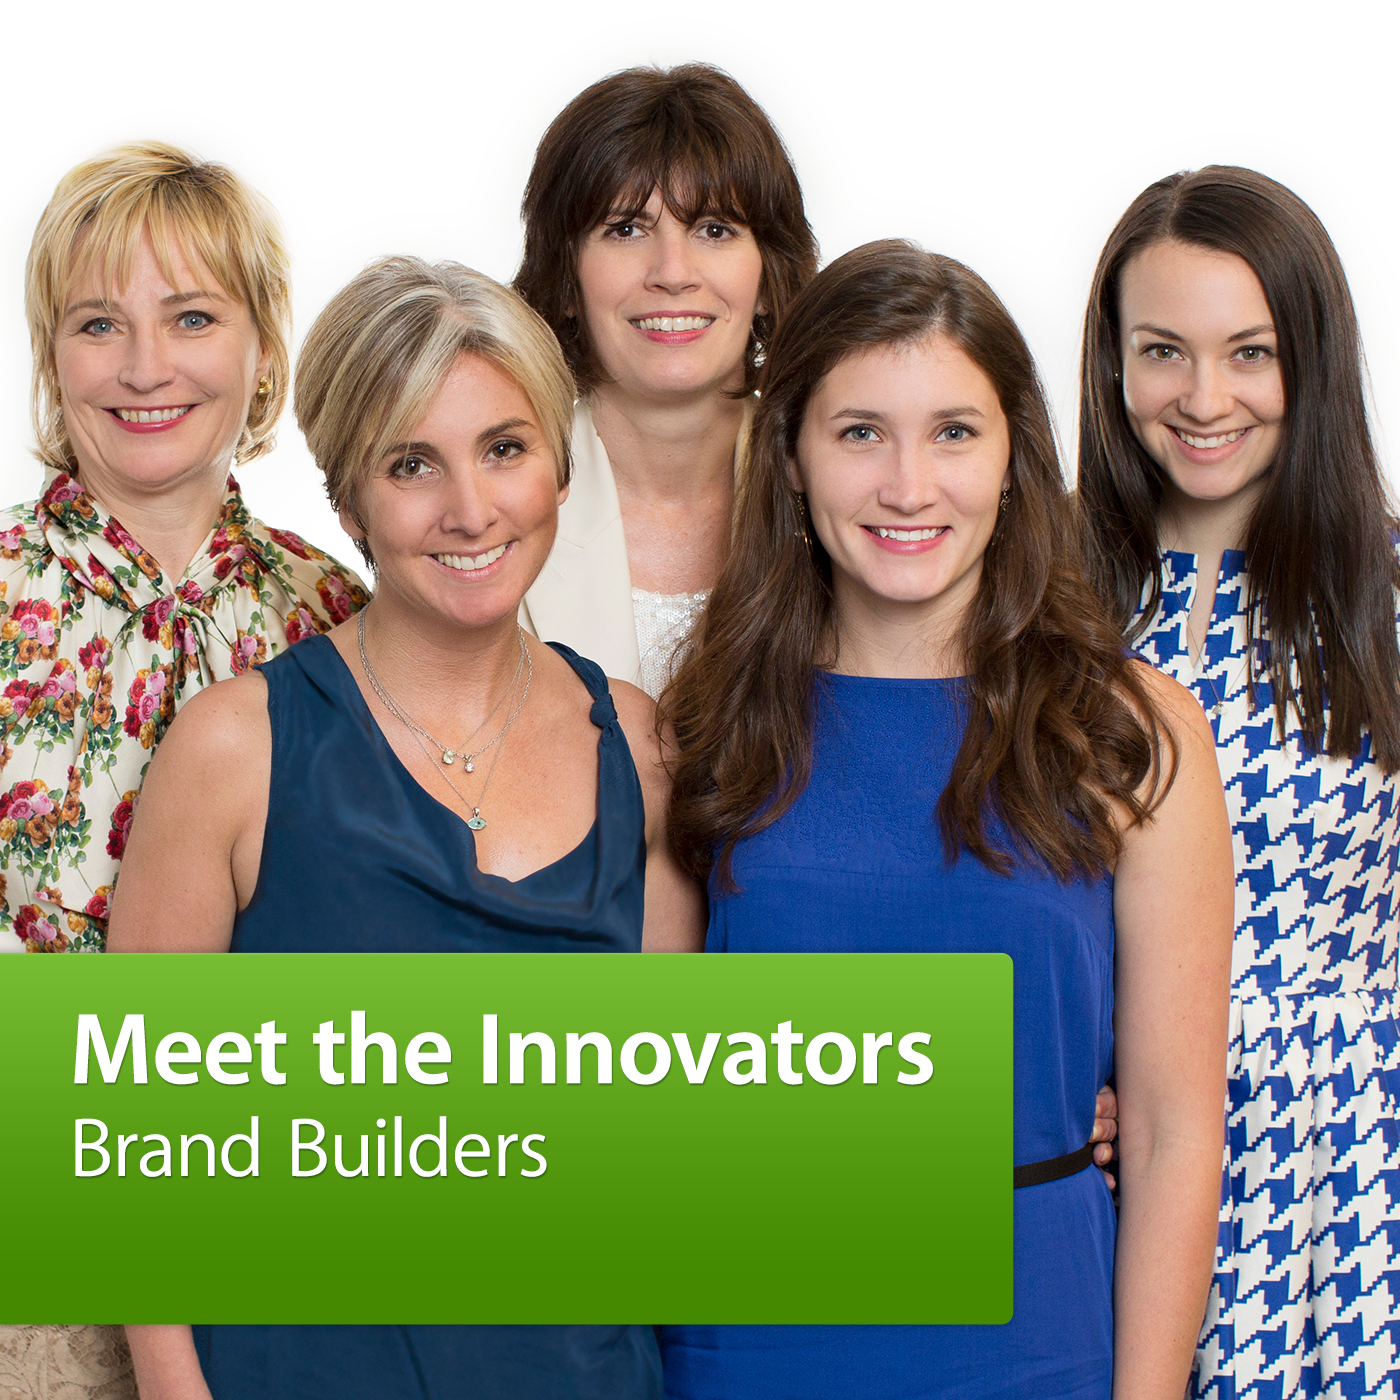 Meet the Innovators: Brand Builders